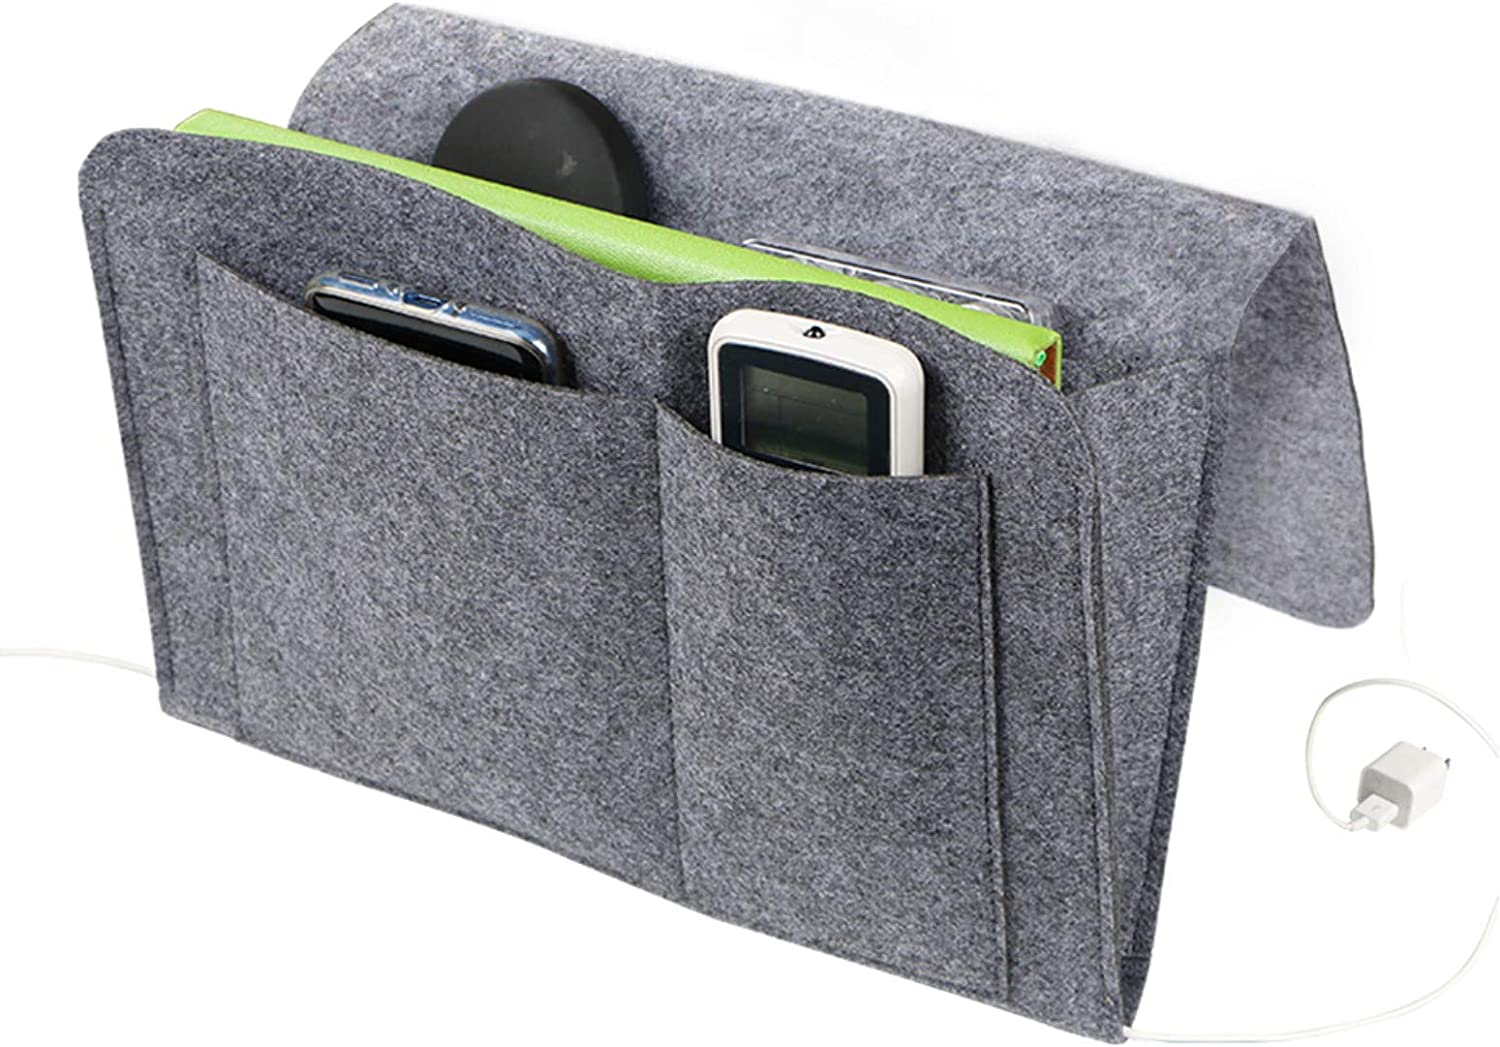 duduta Small Bedside Caddy Under Mattress with 5 Pockets, Hanging Organizer Holder for Dorm Bed Chair Pouch, Dark Grey